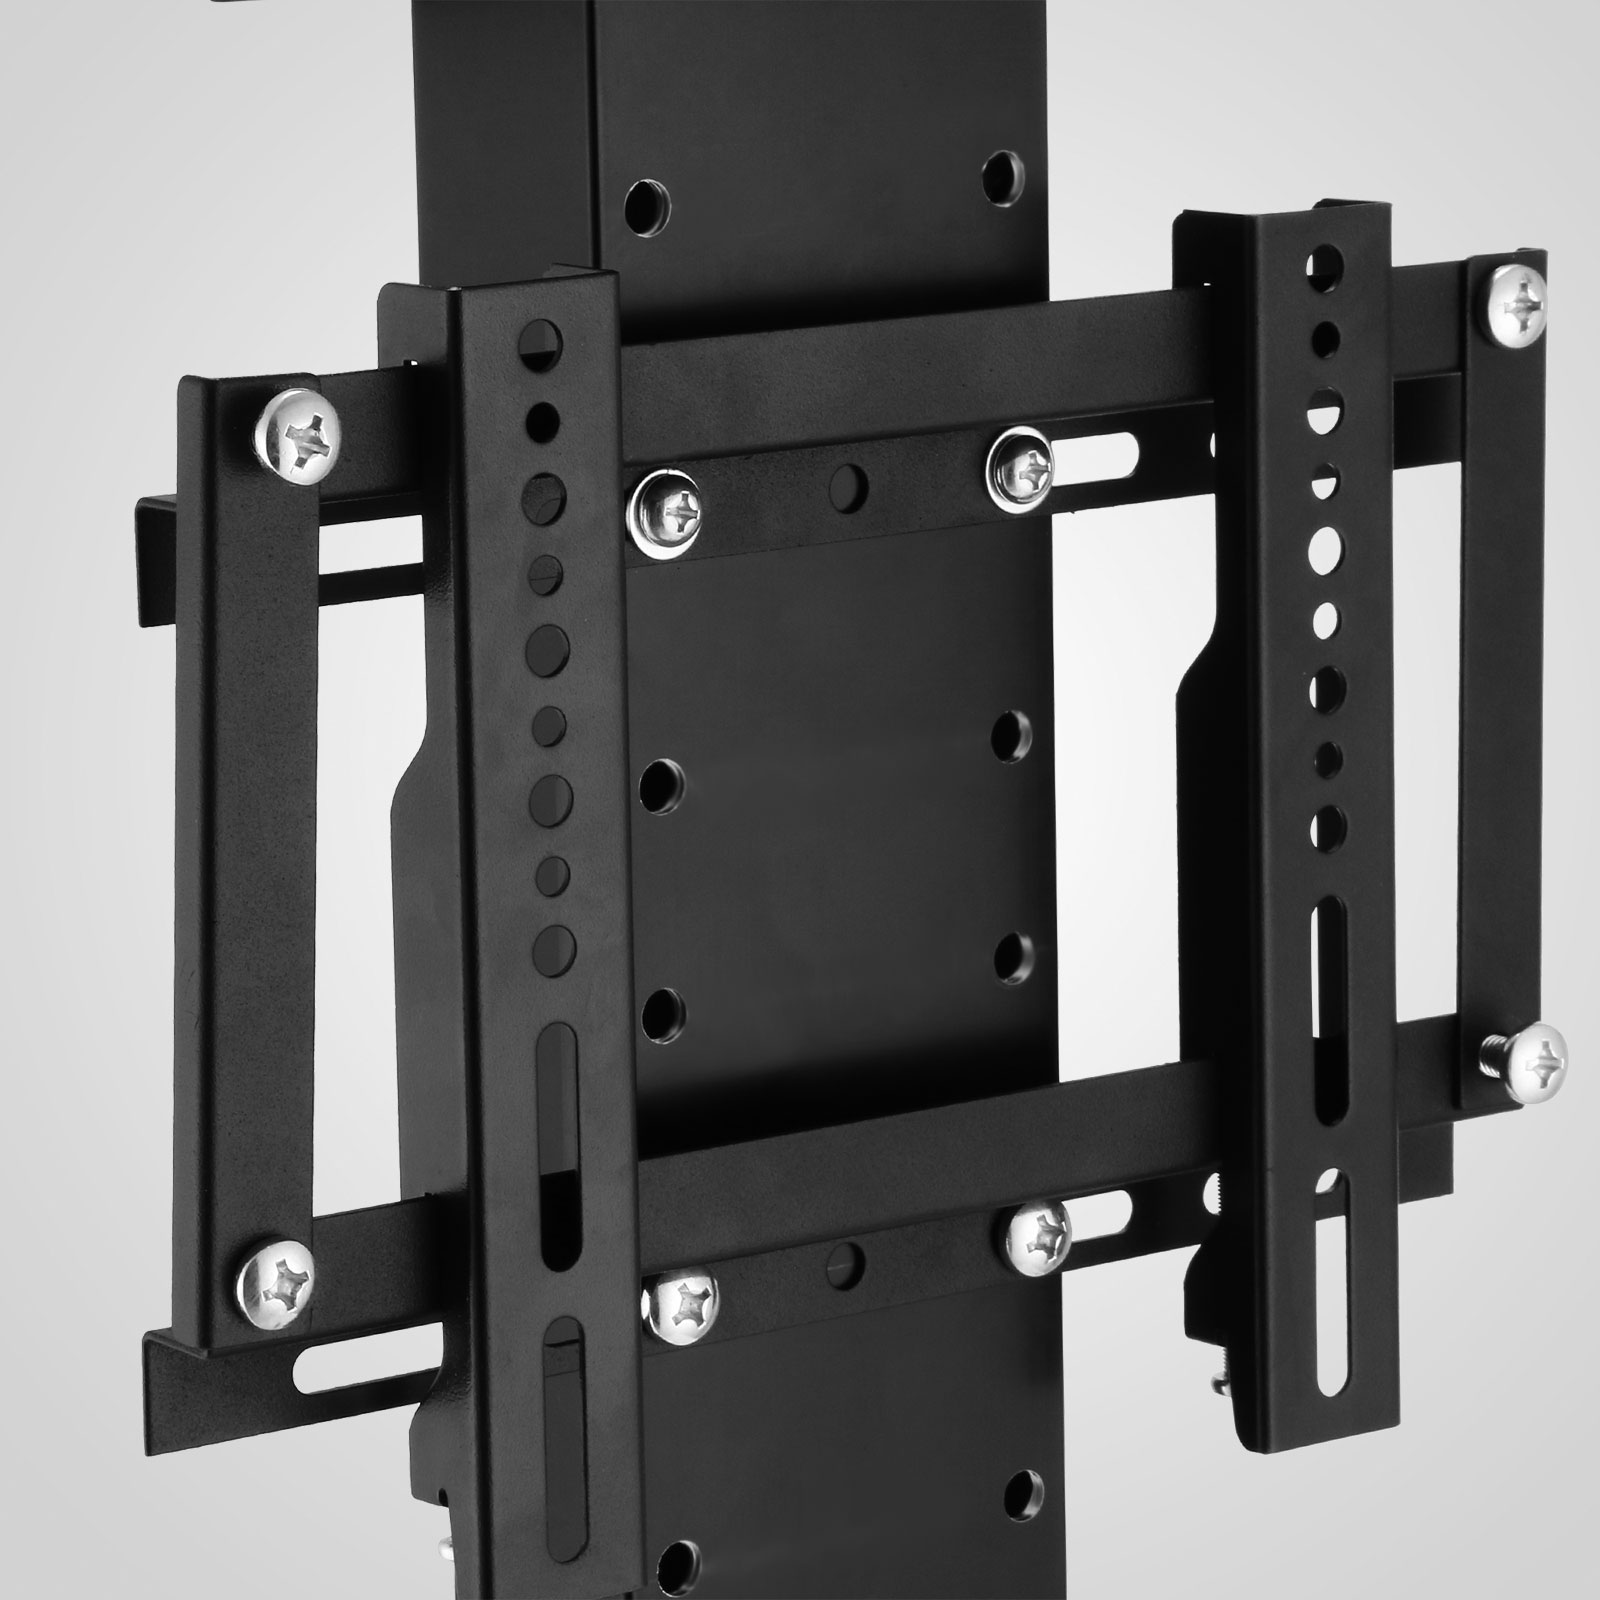 20 tv lift standfu bracket h henverstellbar montagehalterungen standfu ebay. Black Bedroom Furniture Sets. Home Design Ideas